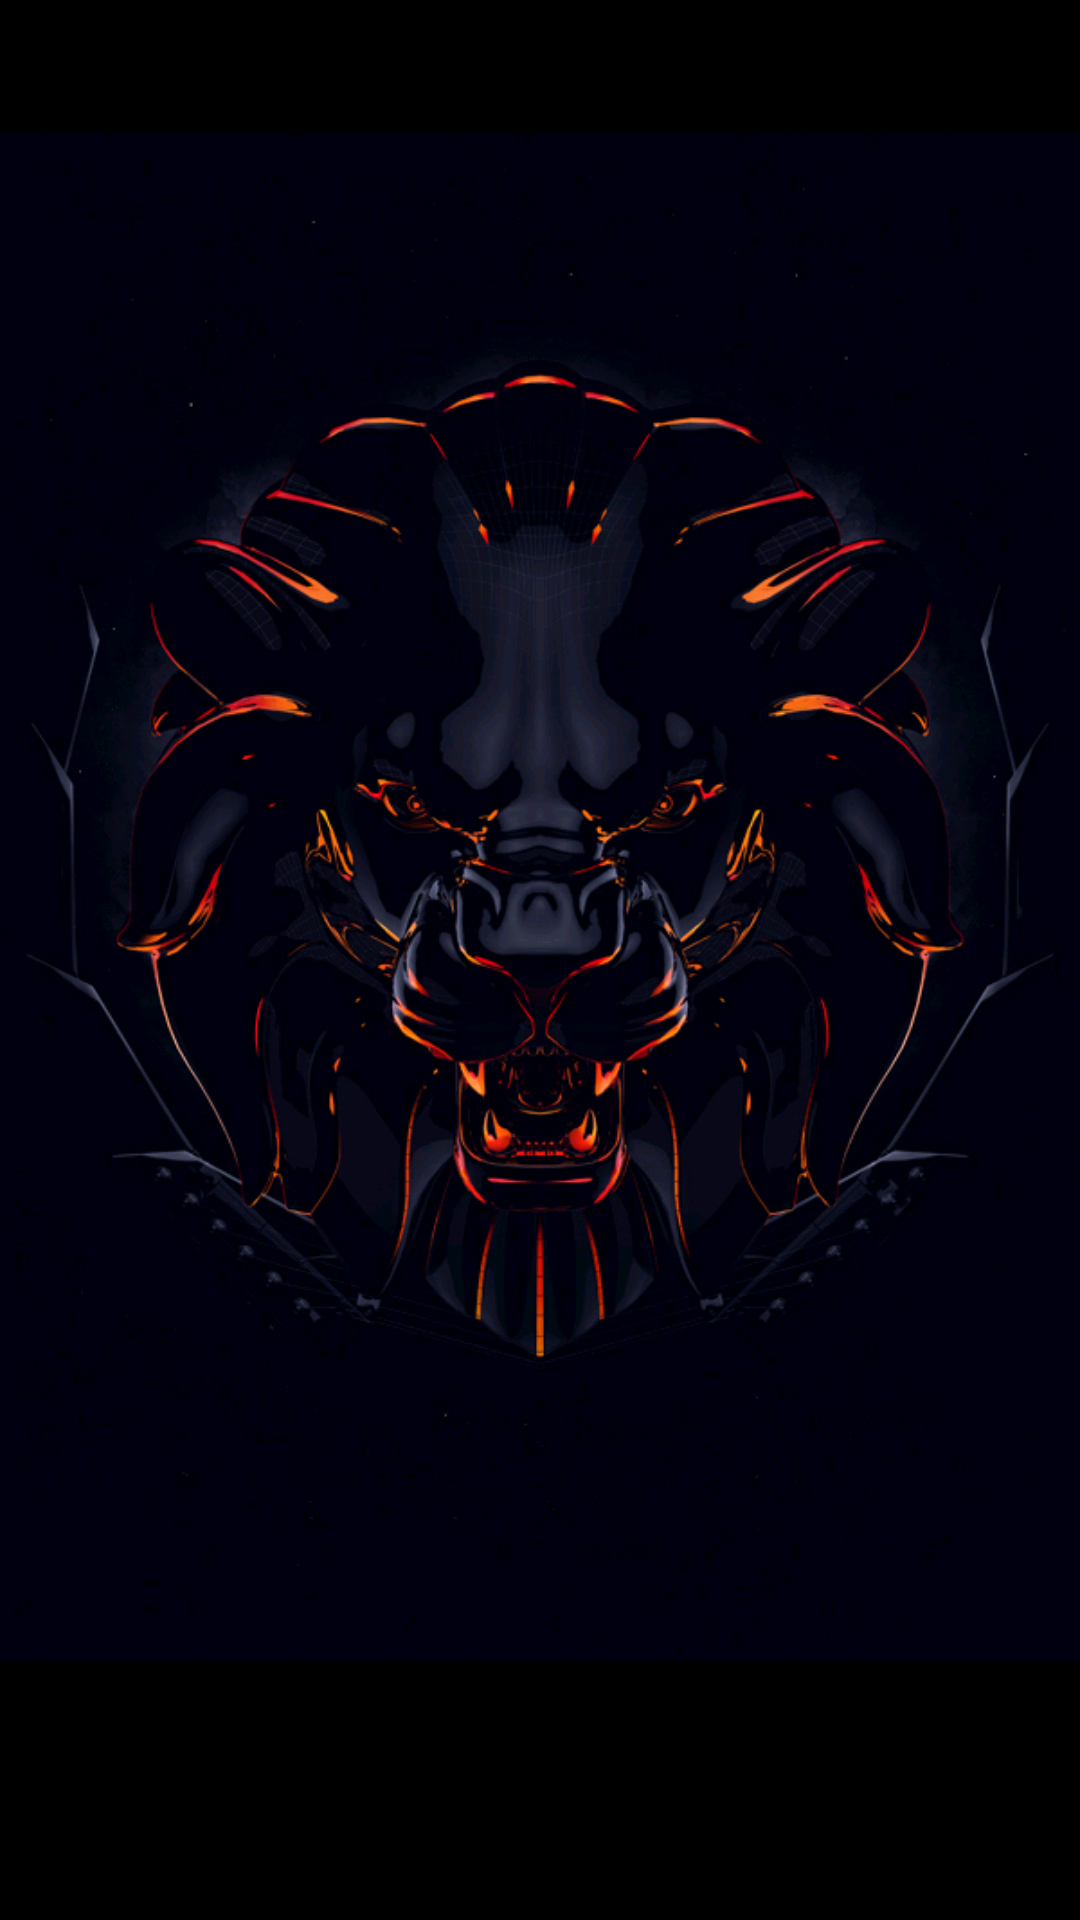 I Share You This Animated Lions Head Picture As One Of The Coolest Badass Wallpapers For